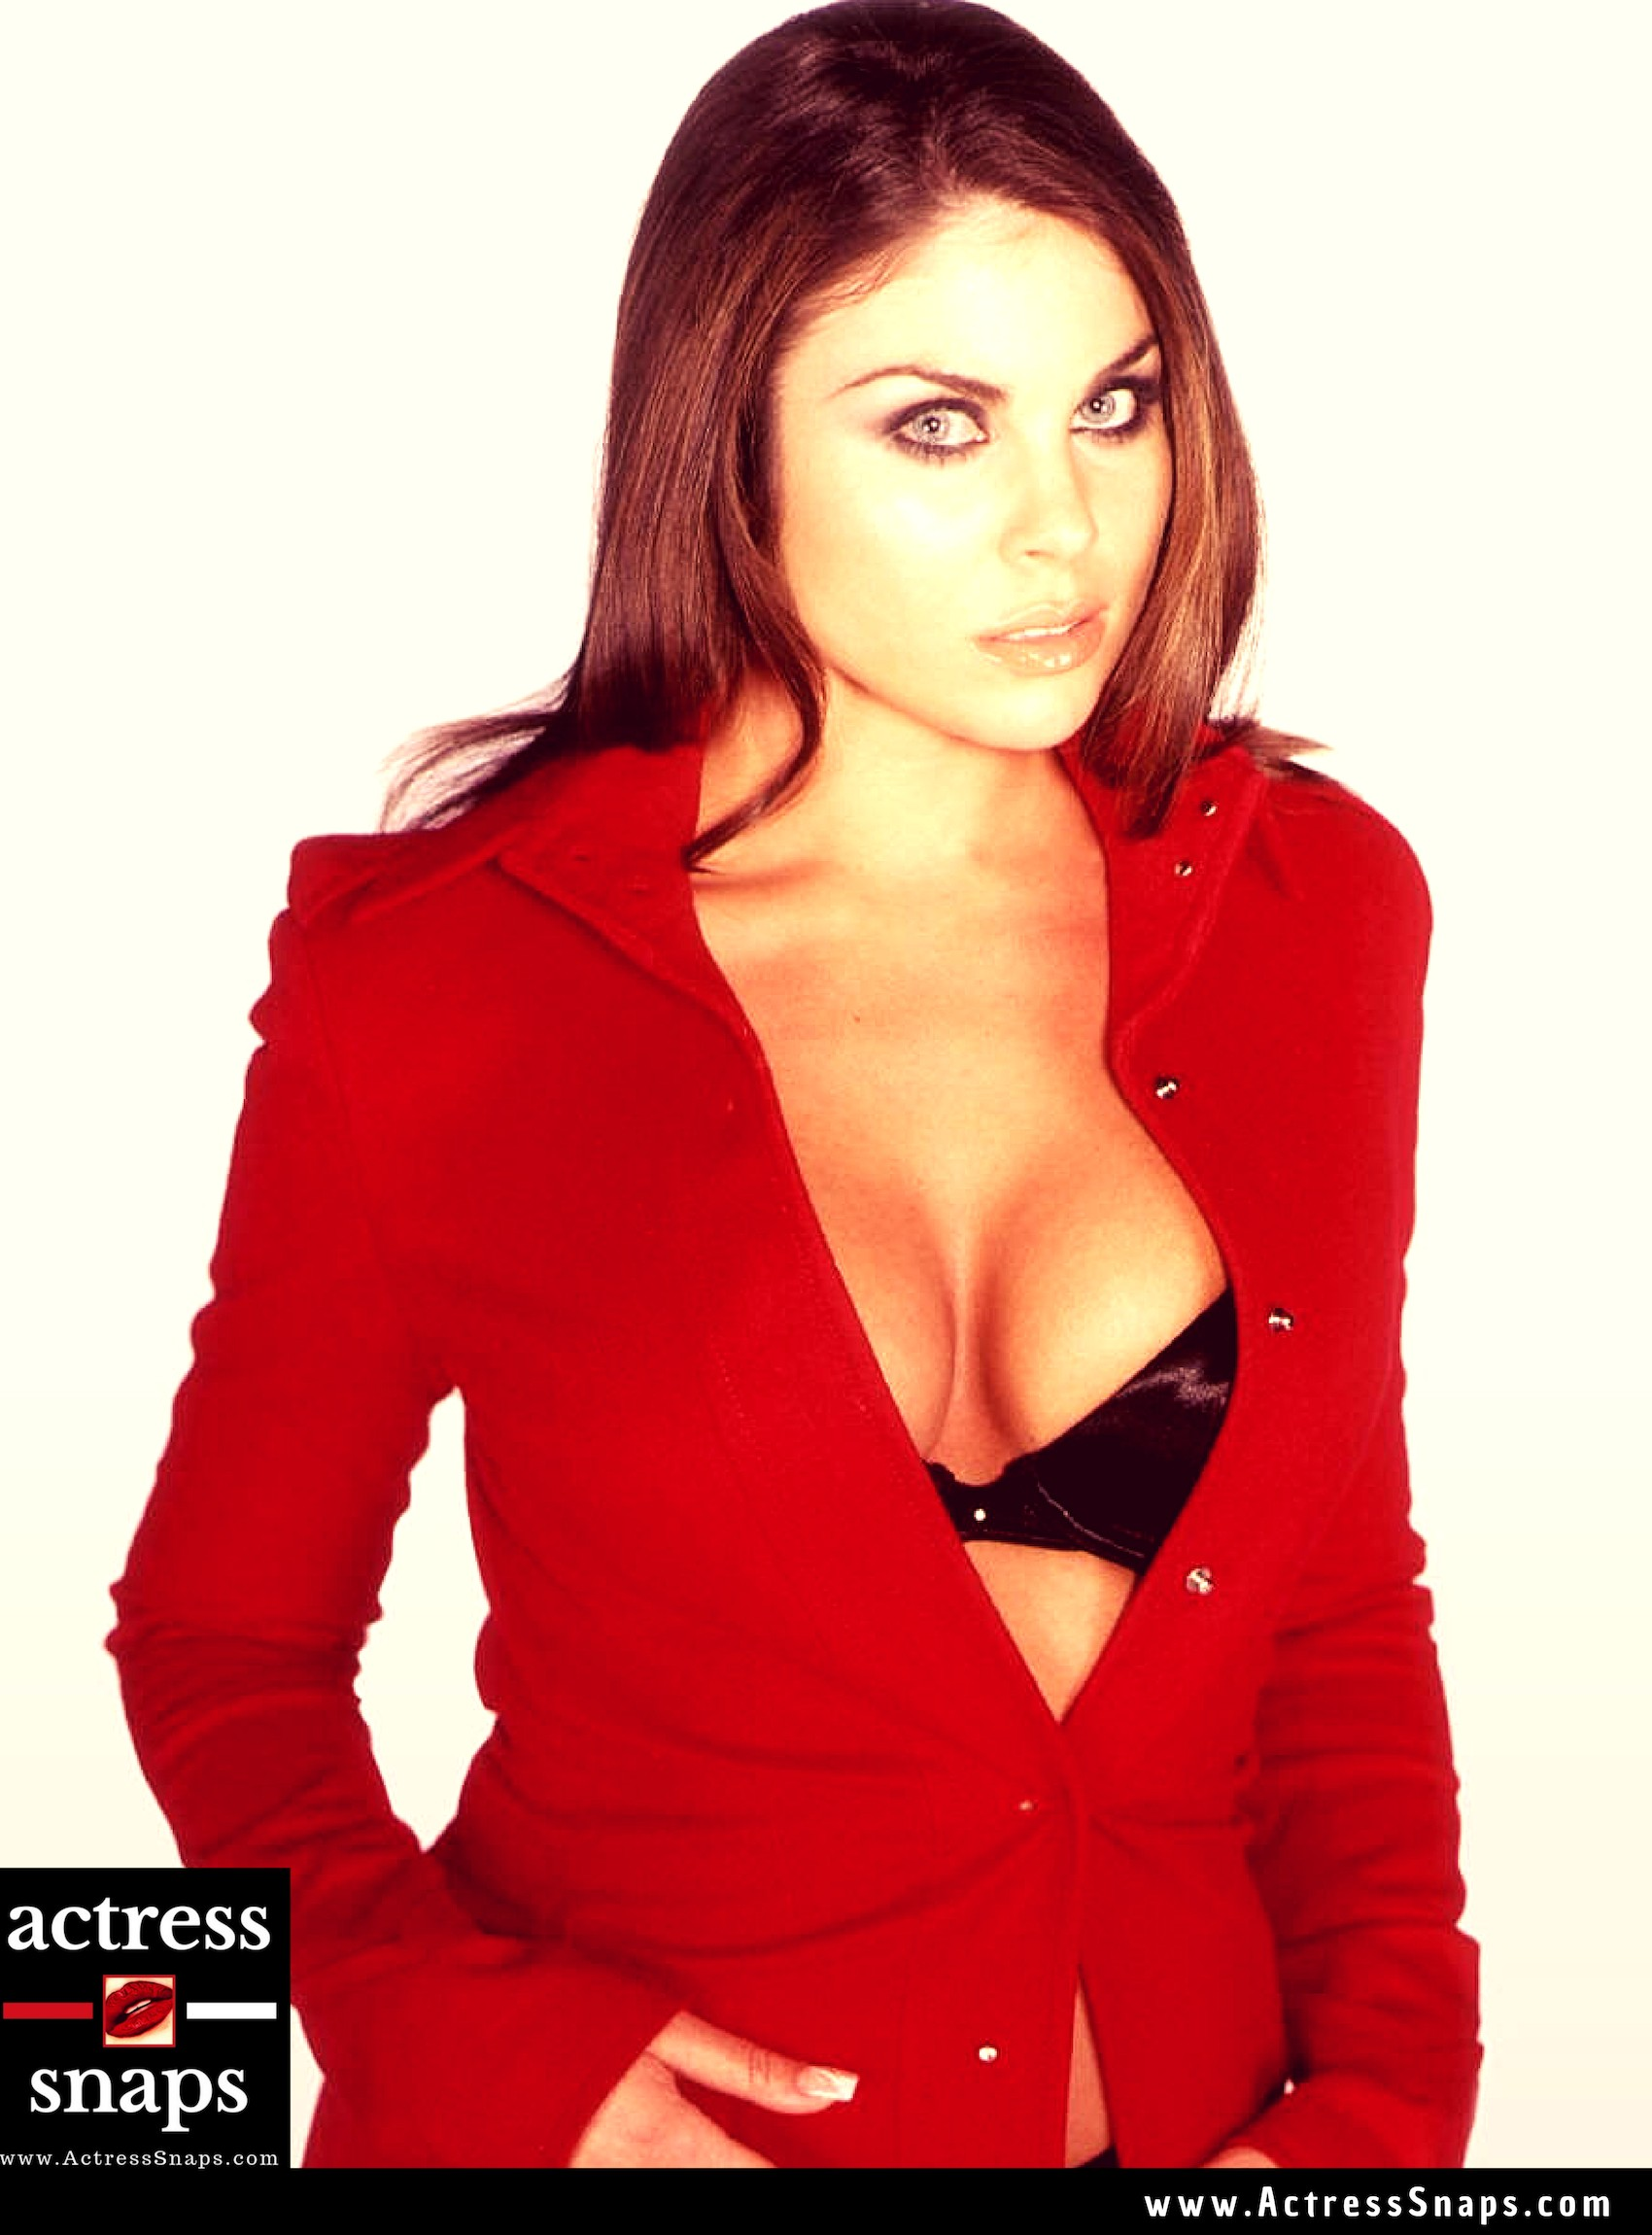 Sexy Nadia Bjorlin Photos - Sexy Actress Pictures | Hot Actress Pictures - ActressSnaps.com